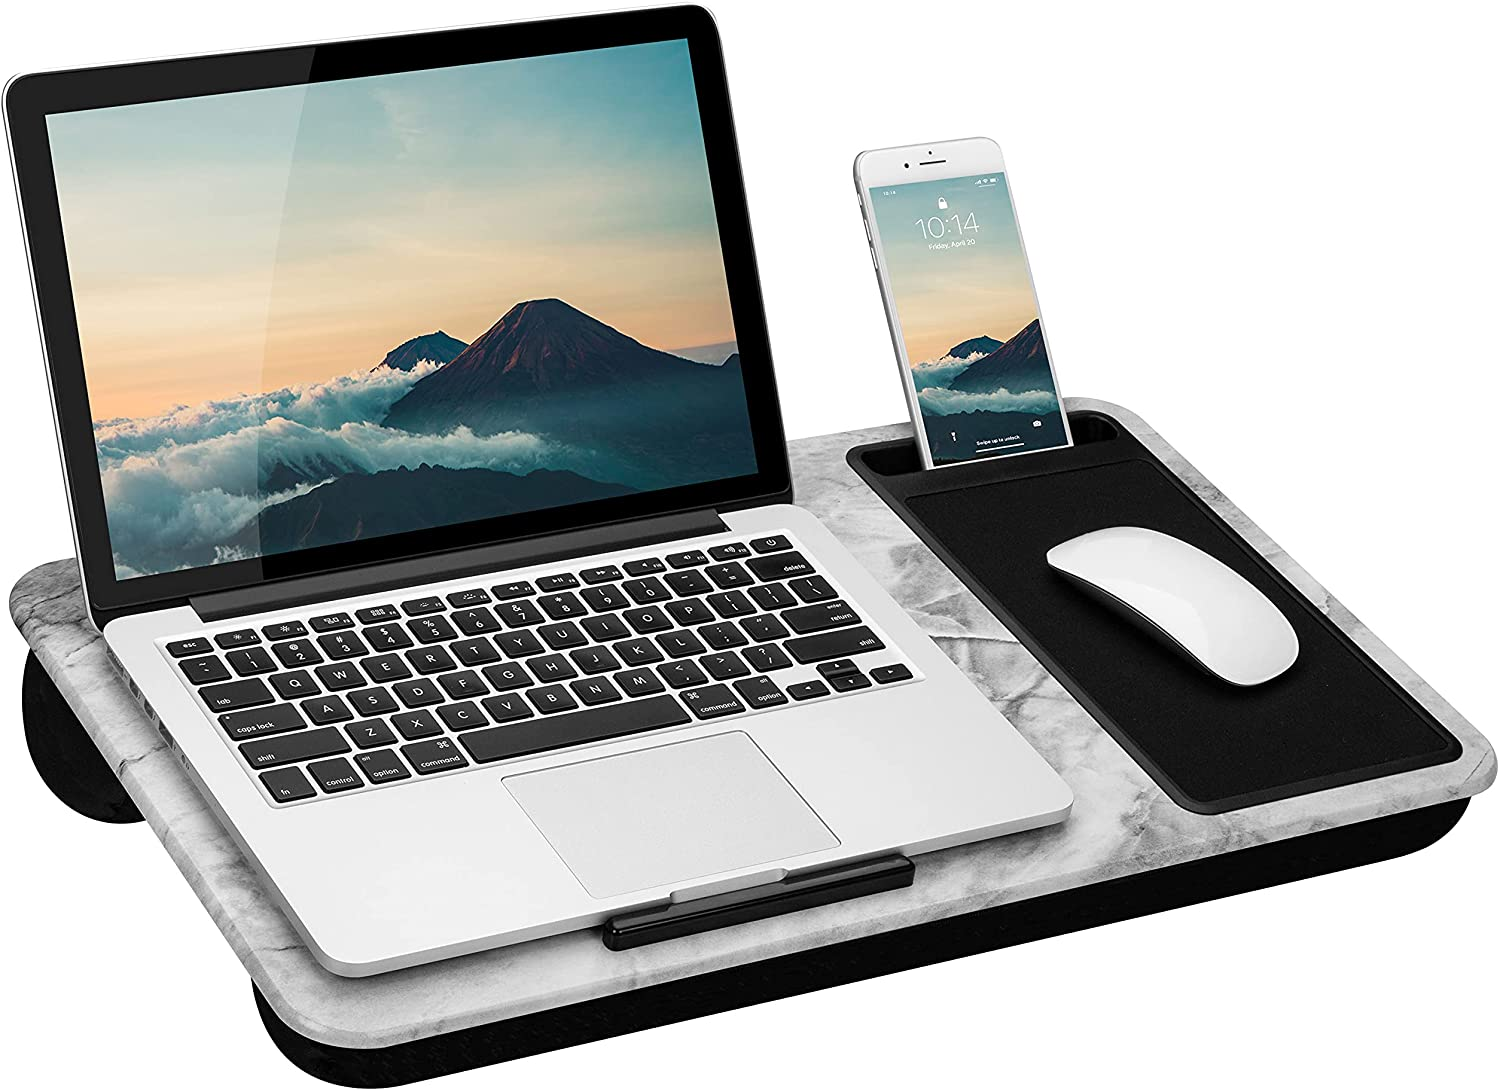 LapGear Home Office Max 60% OFF Lap Desk with P Mouse Popular products Device and Ledge Pad